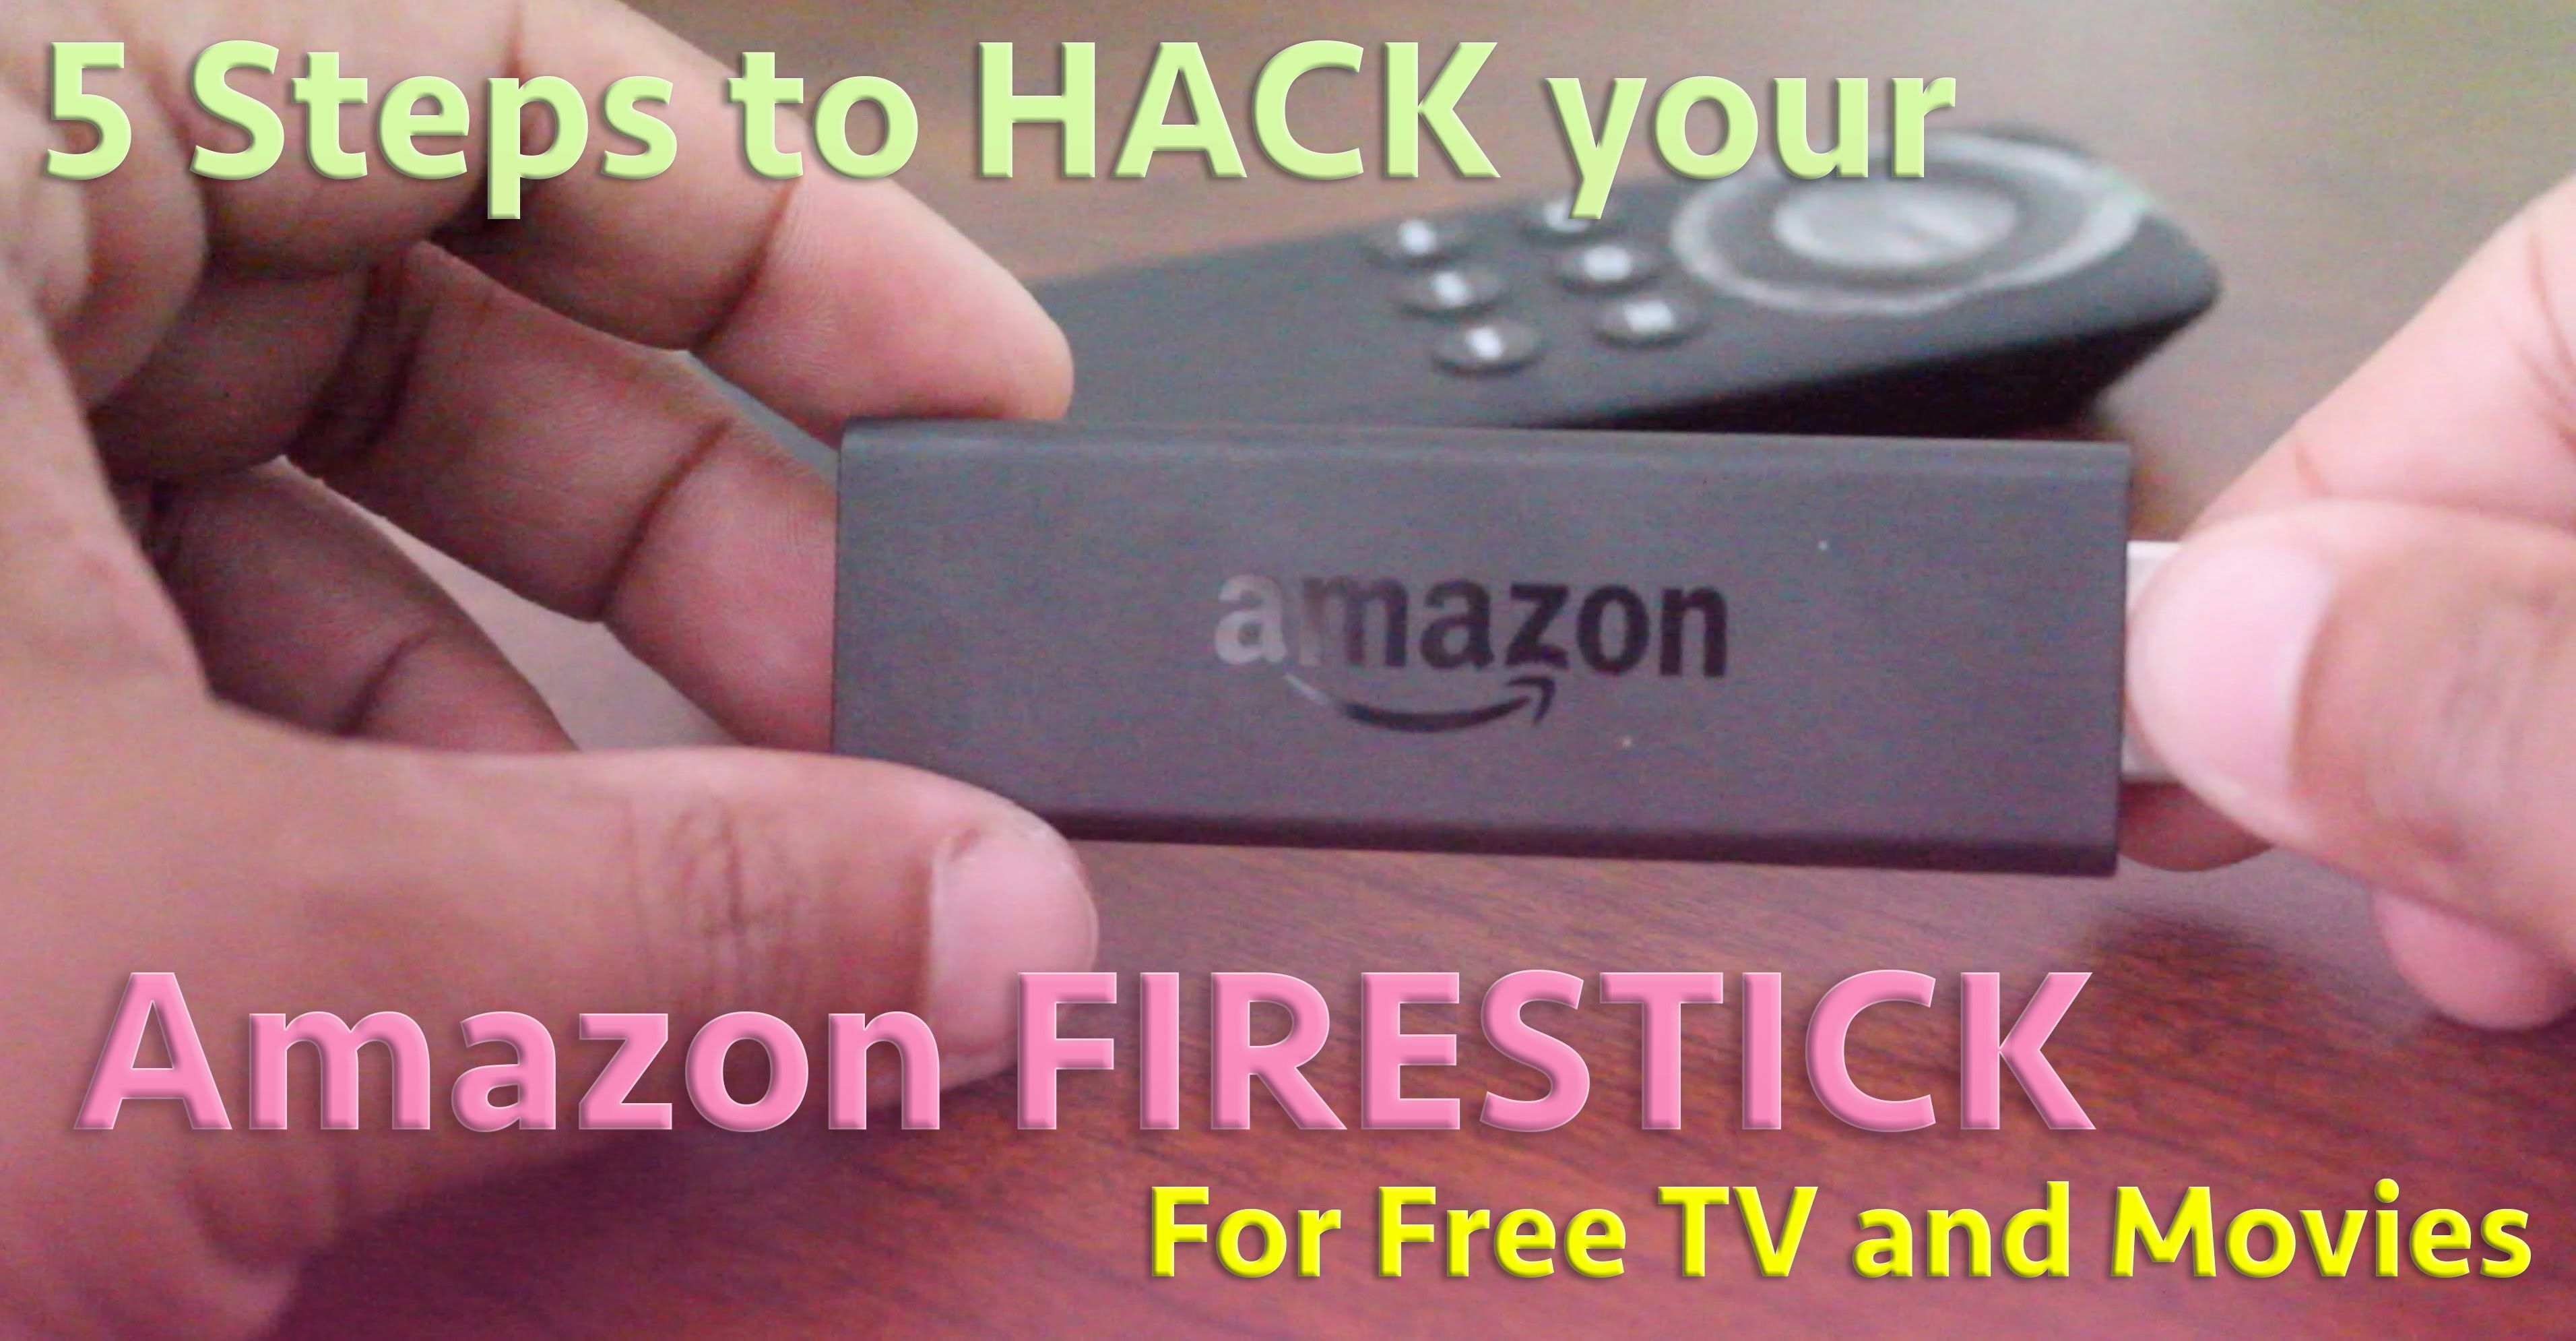 Amazon Firestick 5 Step Hack For Free Tv And Movies Free Tv